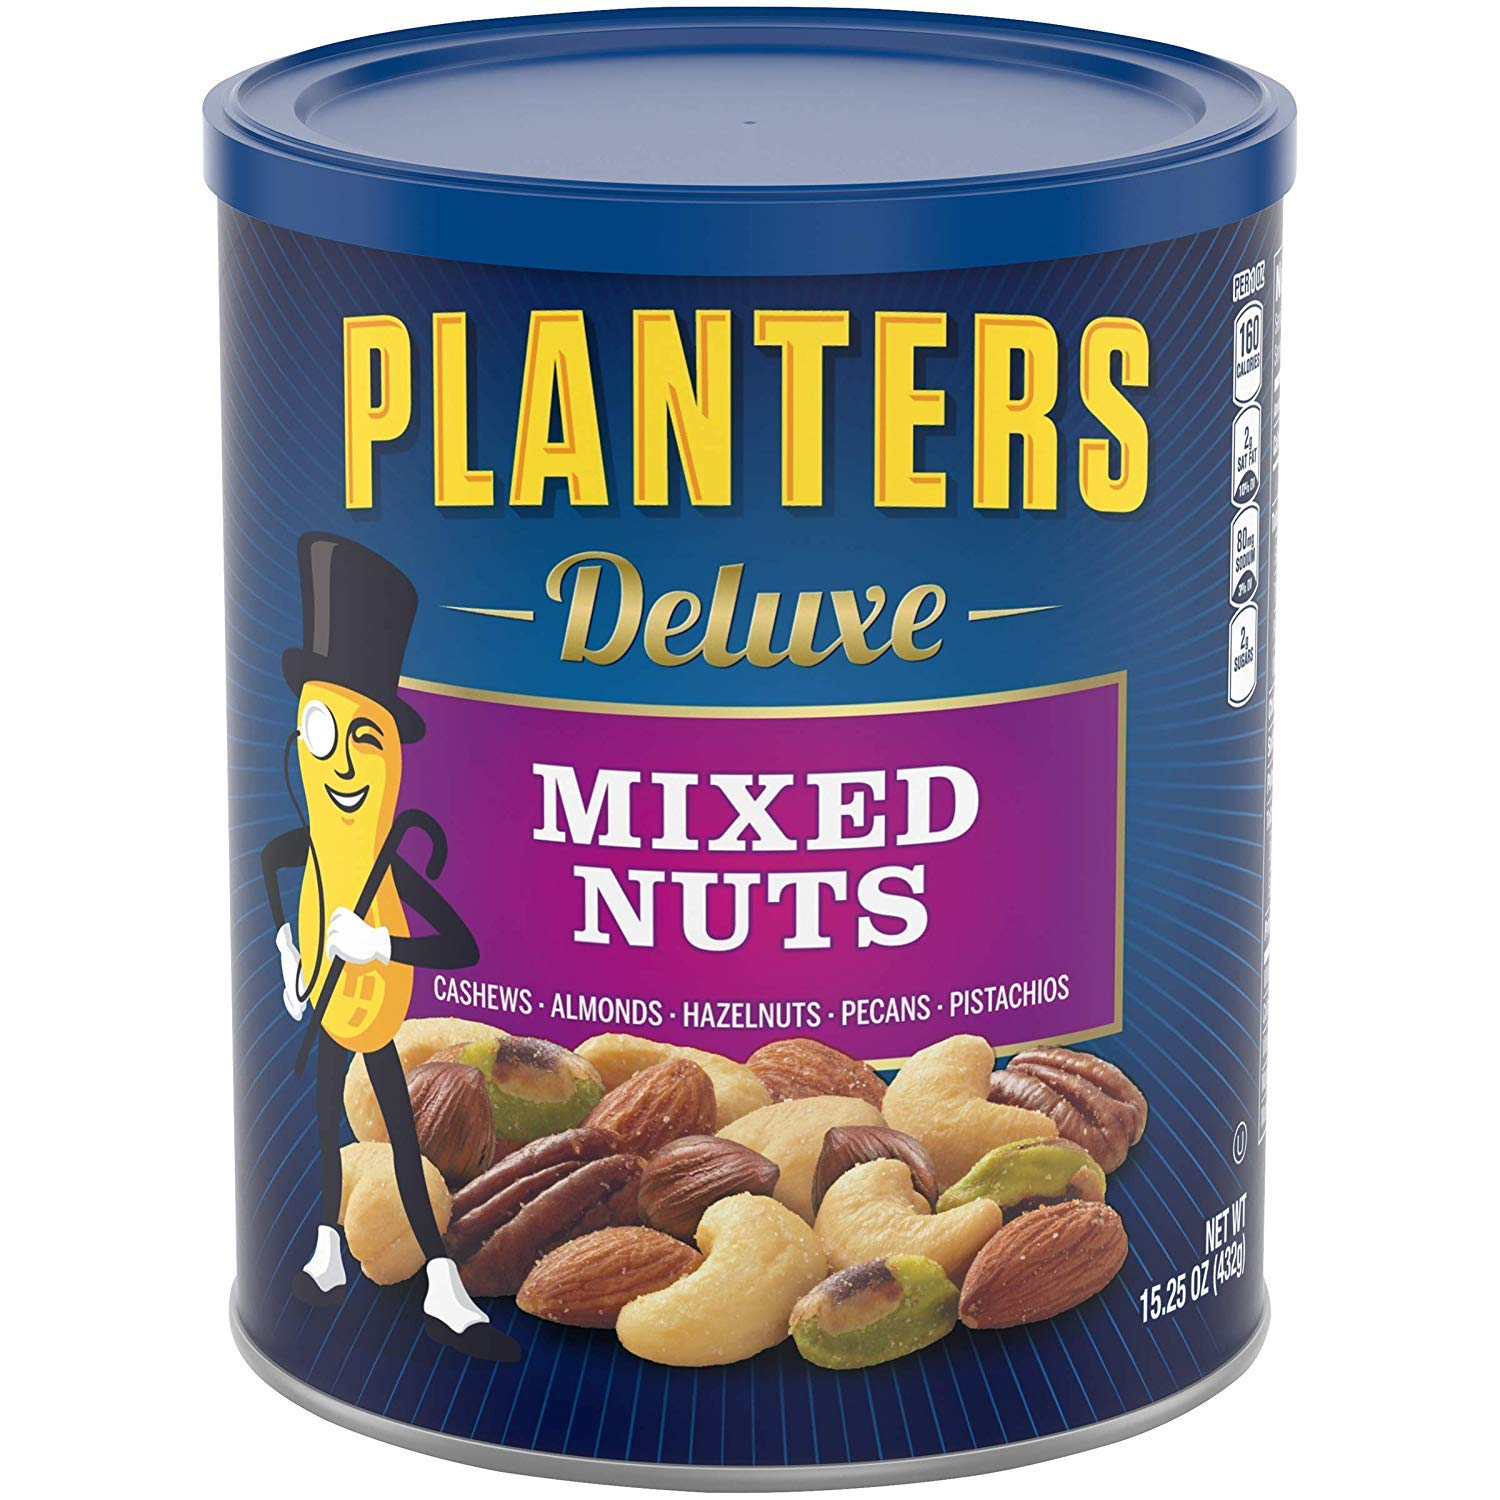 Planters FHDJV Deluxe Mixed Nuts, 15.25 oz Canister, 4 Pack